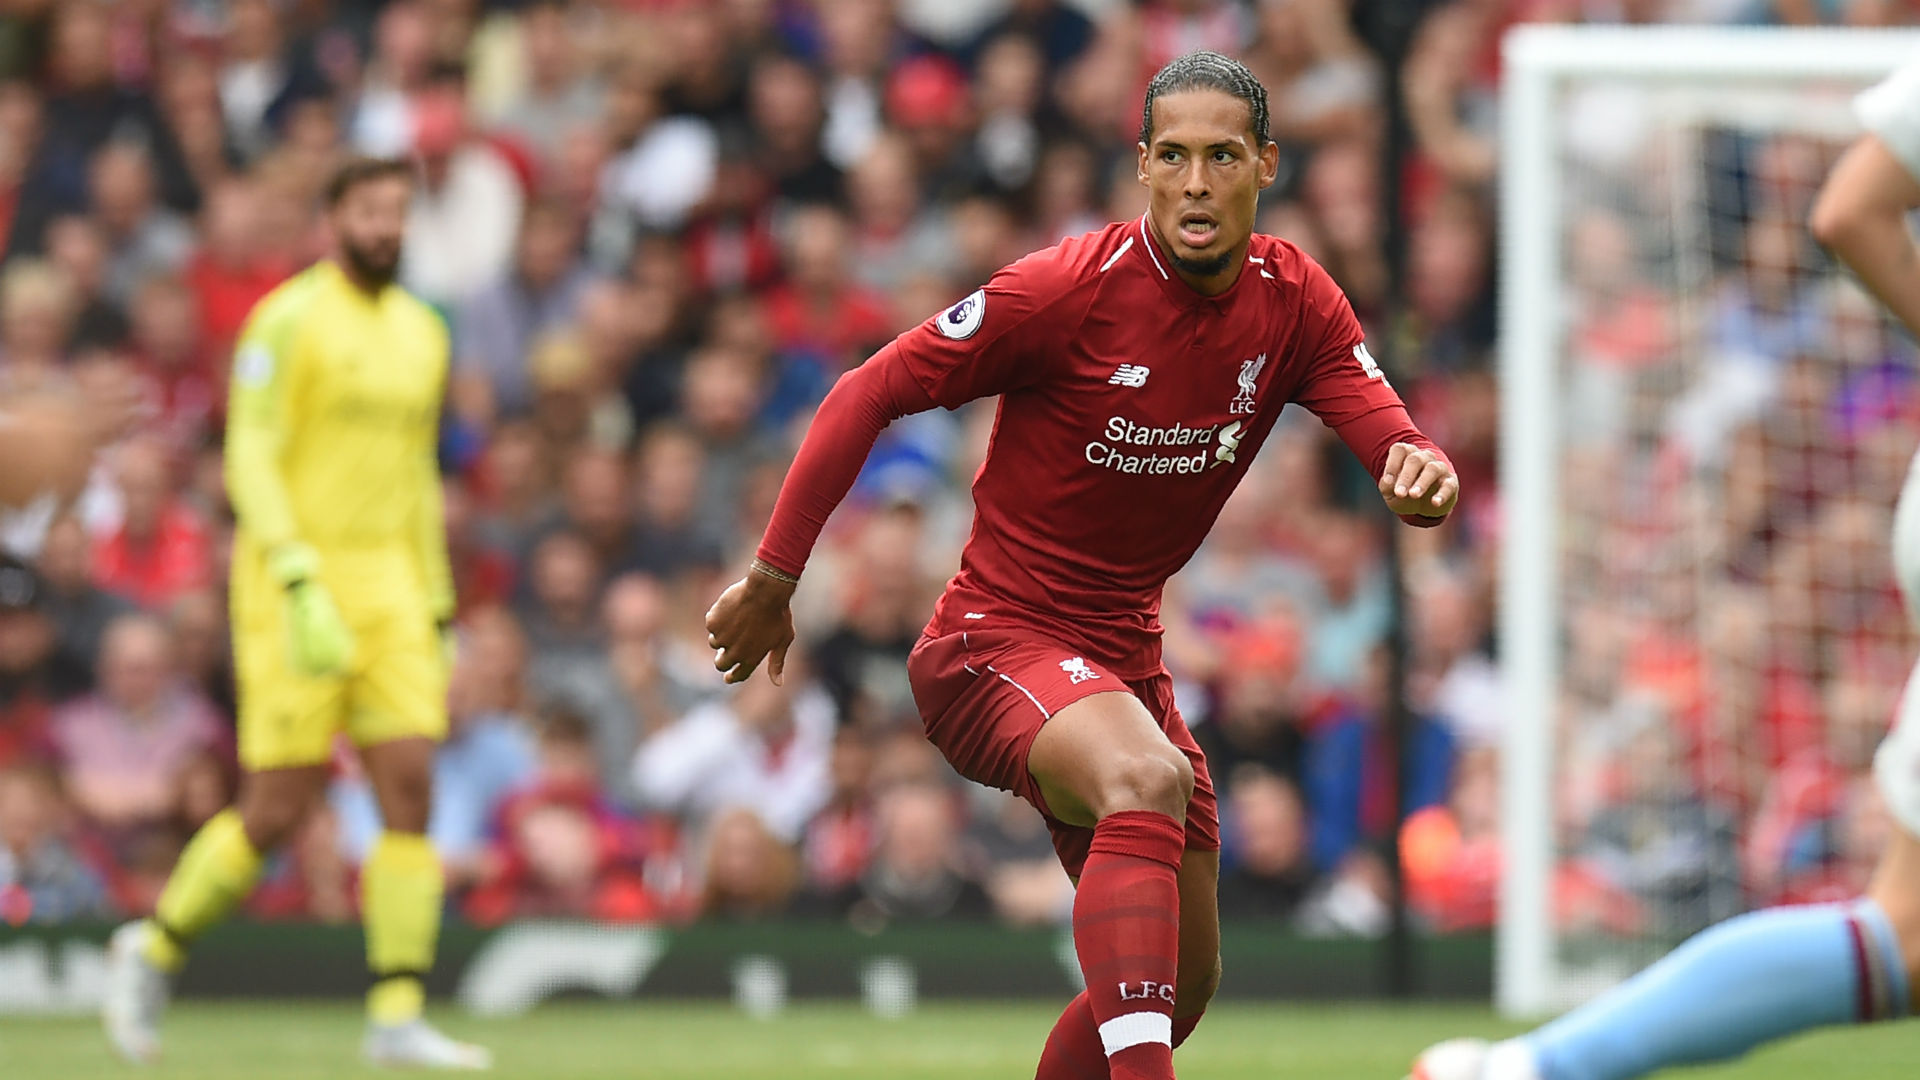 Arsenal capitalised on shocking errors from Liverpool's Virgil van Dijk and Alisson to beat the champions 2-1 at The Emirates on Wednesday. The loss ended their hopes of a record points tally for the Premier League season. It means Liverpool, on 93 points, can now only stretch that tally to 99, one short of Manchester […]